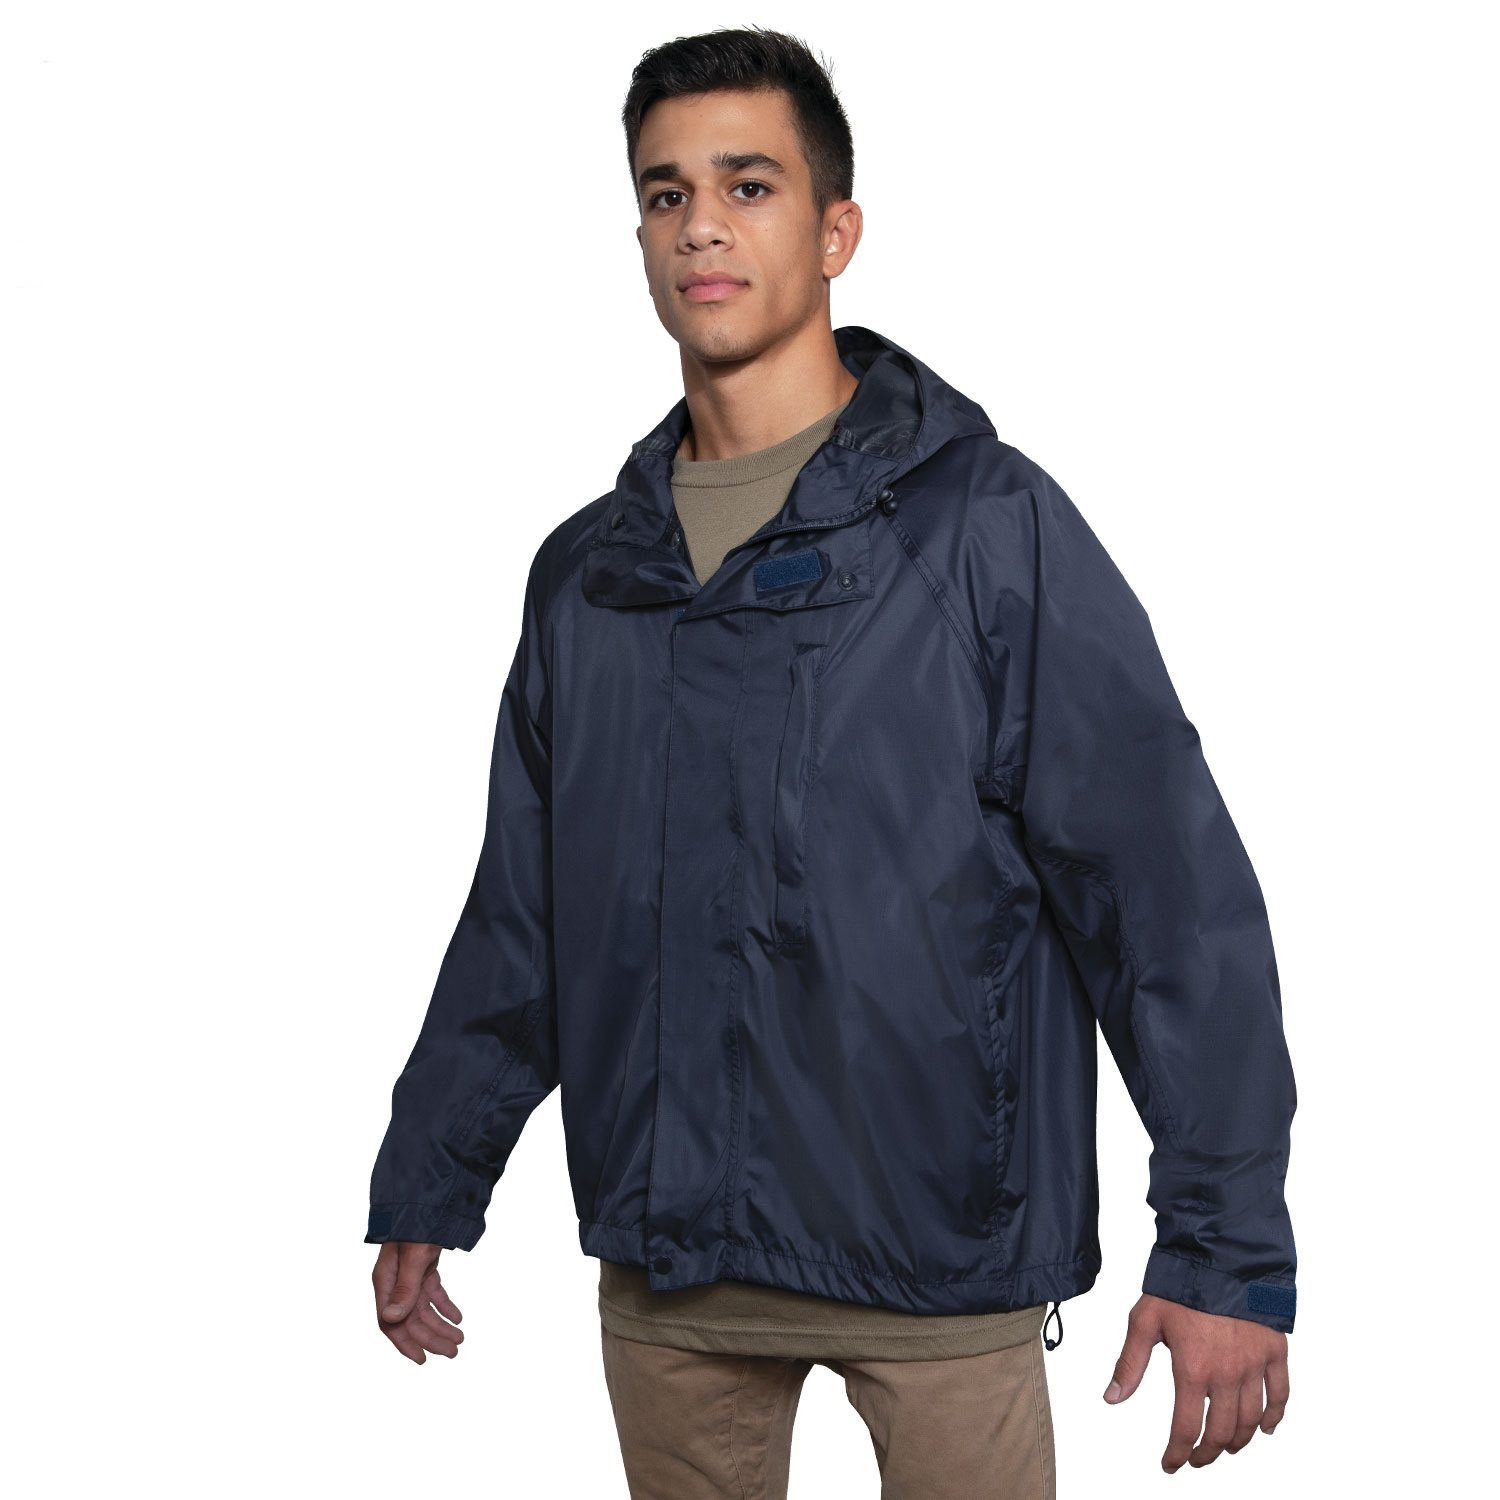 Lightweight waterproof jacket with hood NAVY BLUE ROTHCO 1874 L-11